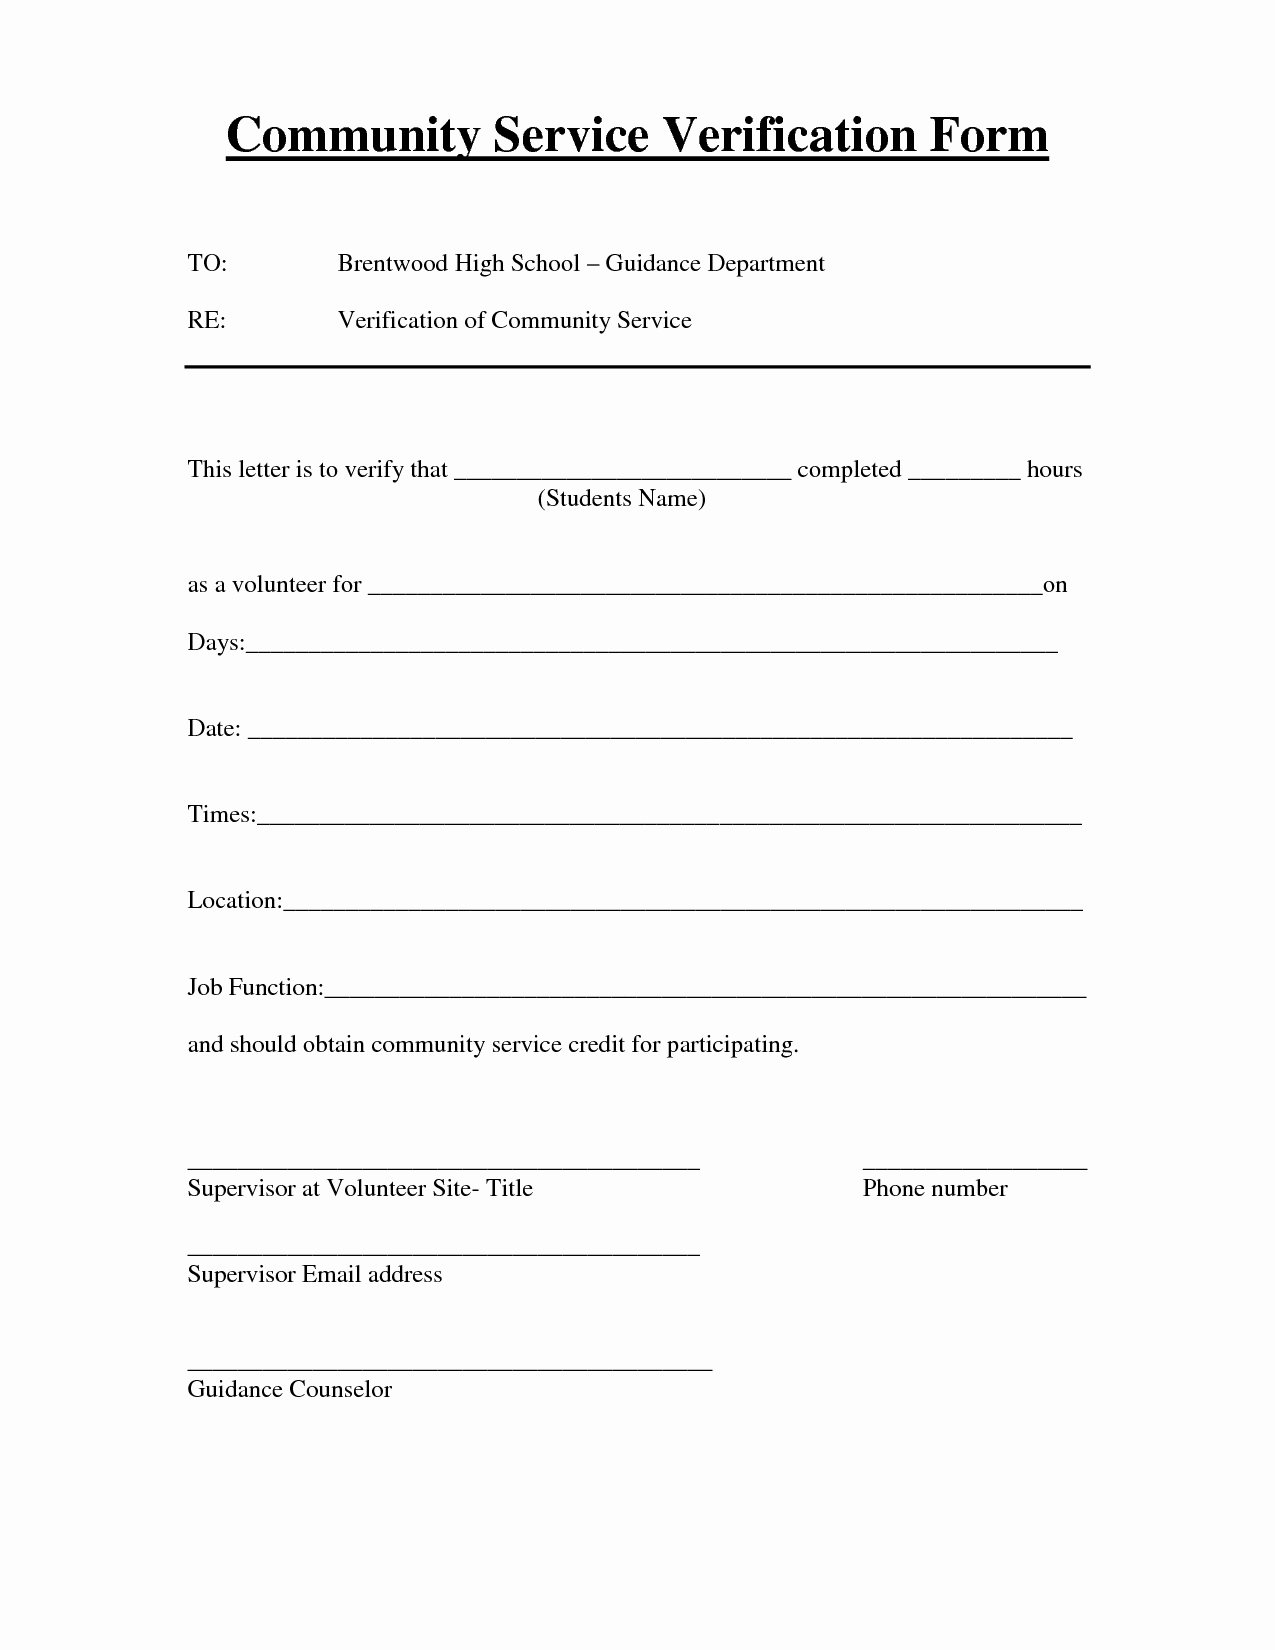 Community Service form Template Pdf New Best S Of Verification Volunteer Hours Letter